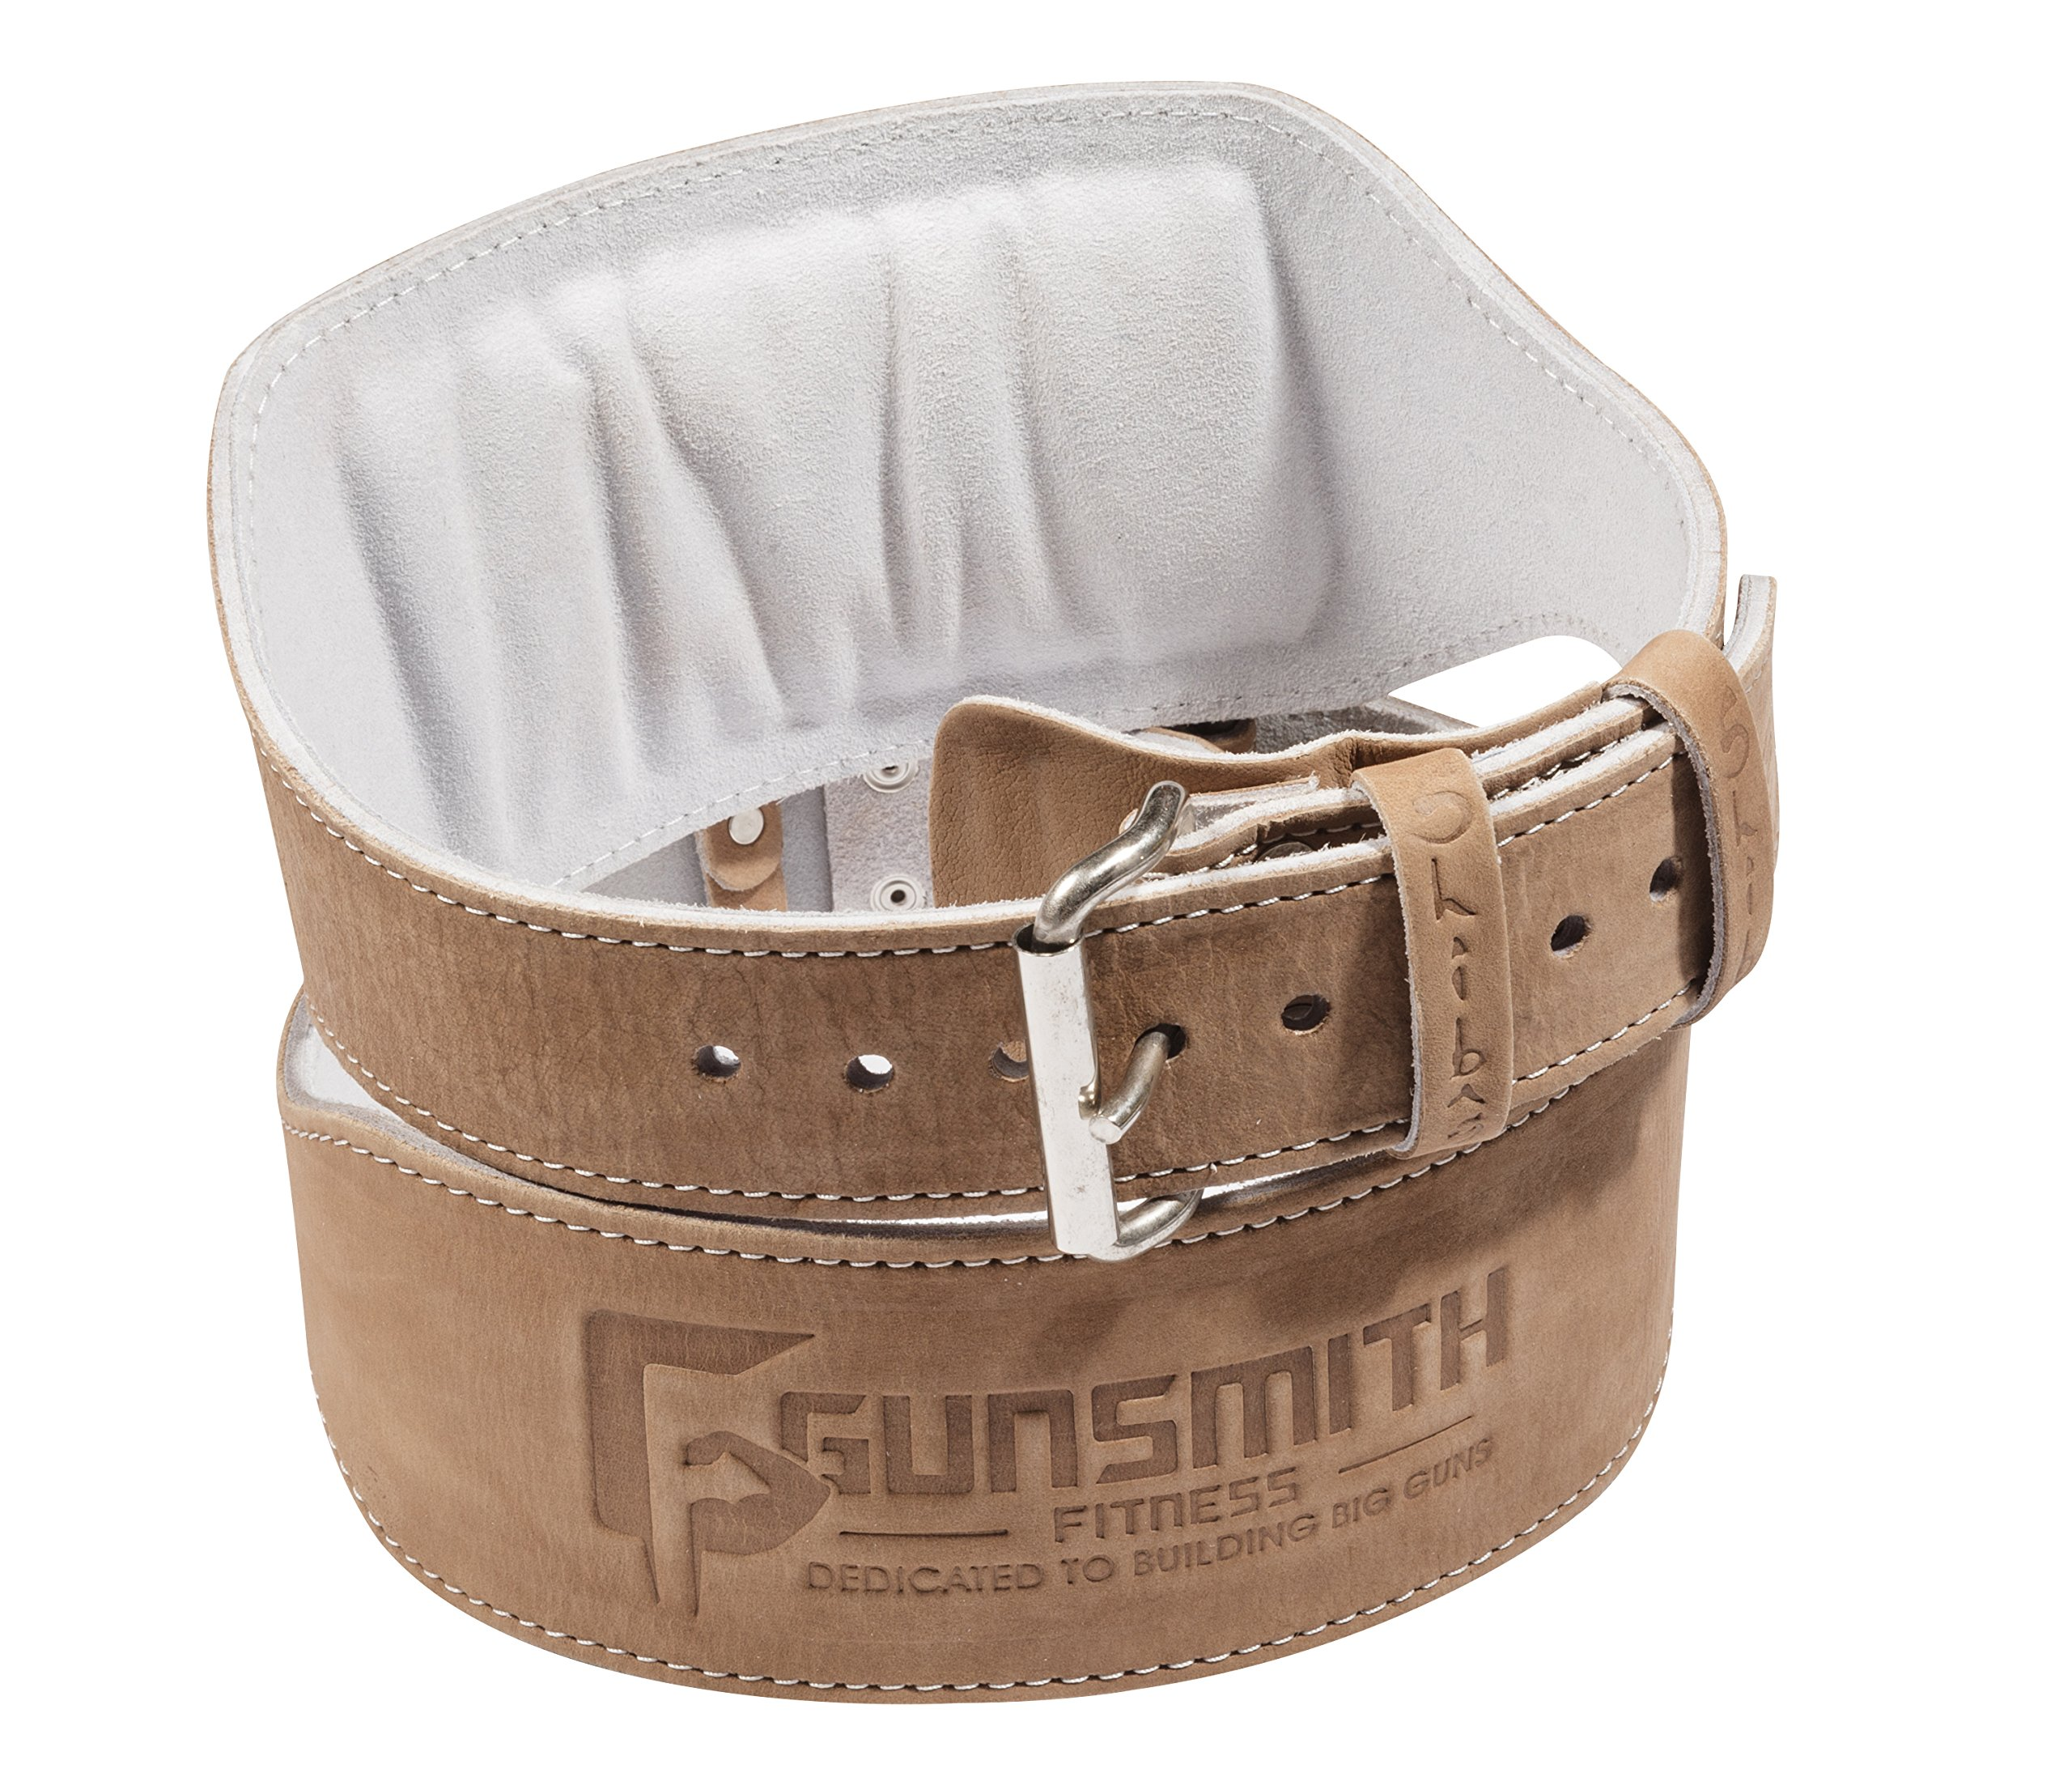 Gunsmith Fitness Premium 100% Real Genuine Leather Individually Handmade, Advanced Weight Lifting, Powerlifting & Bodybuilding (4-Inch width, X Large (Fits 37 - 42 inches))